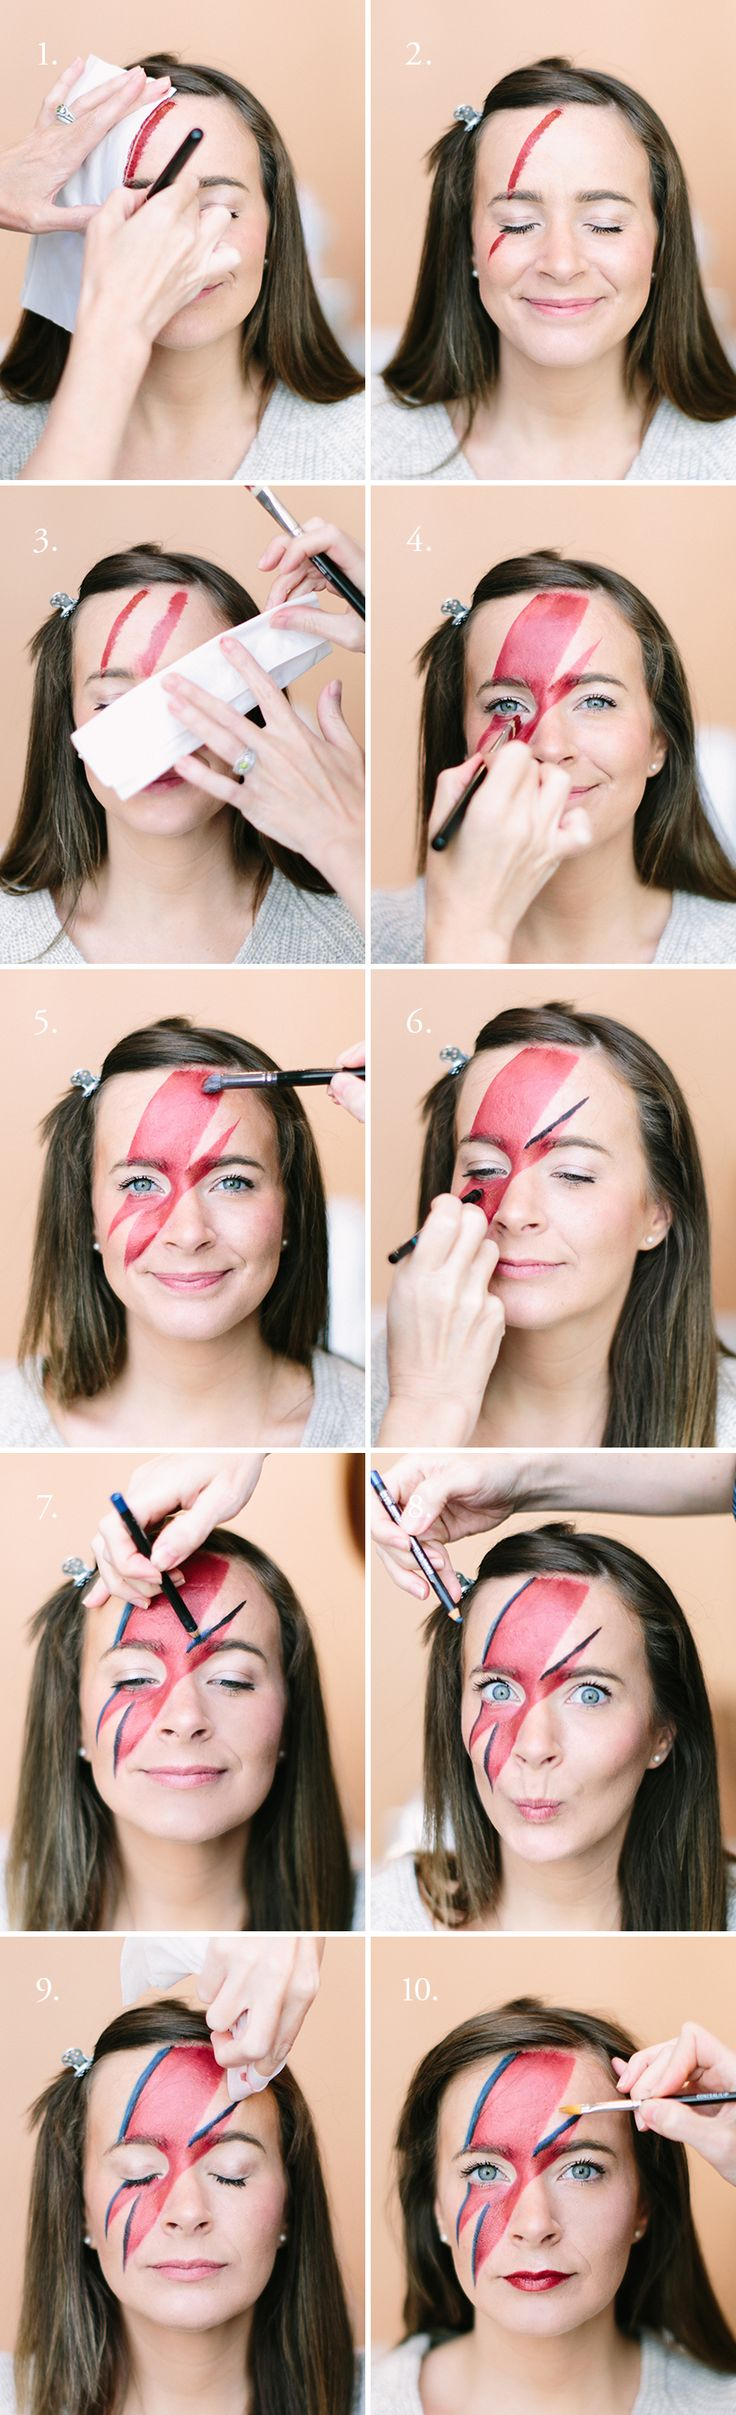 David Bowie Makeup Tutorial | Camille Styles